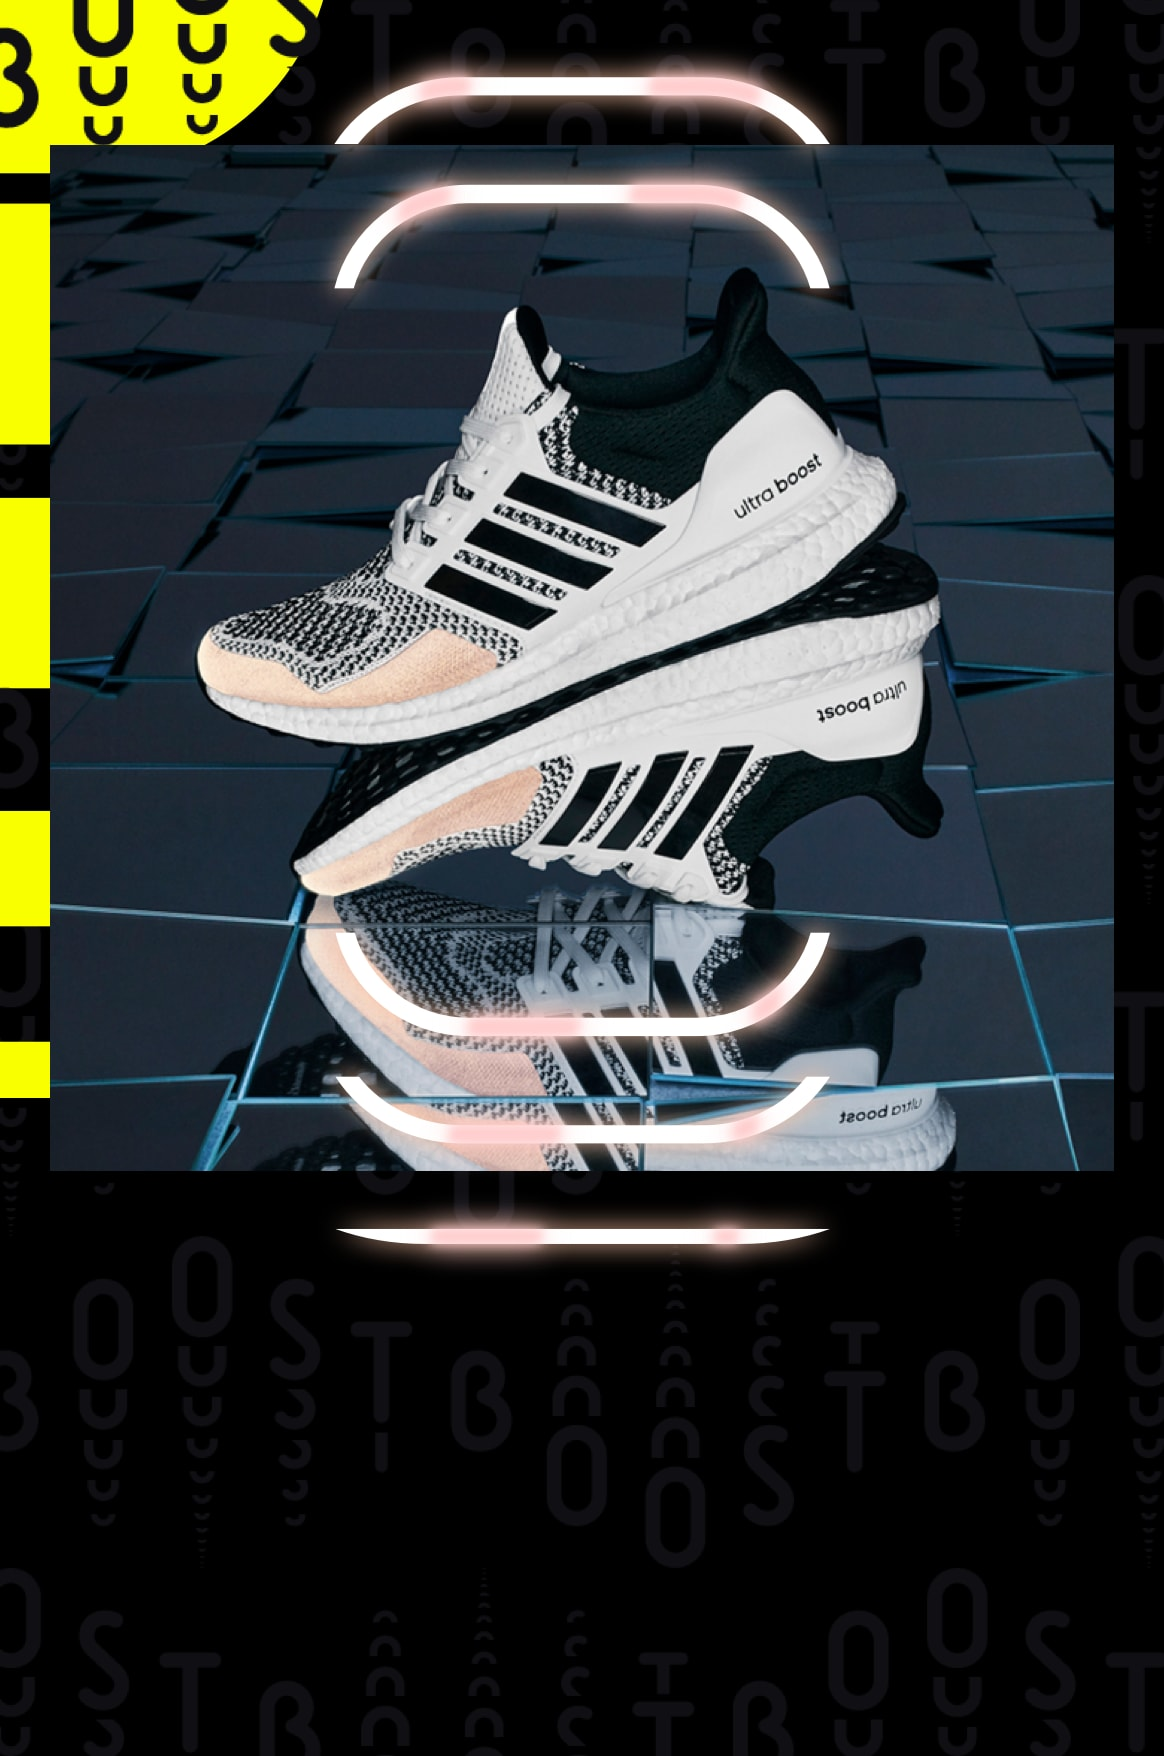 Ultraboost DNA Reflective, performance running, lifestyle shoe, shining in the dark in urban setting